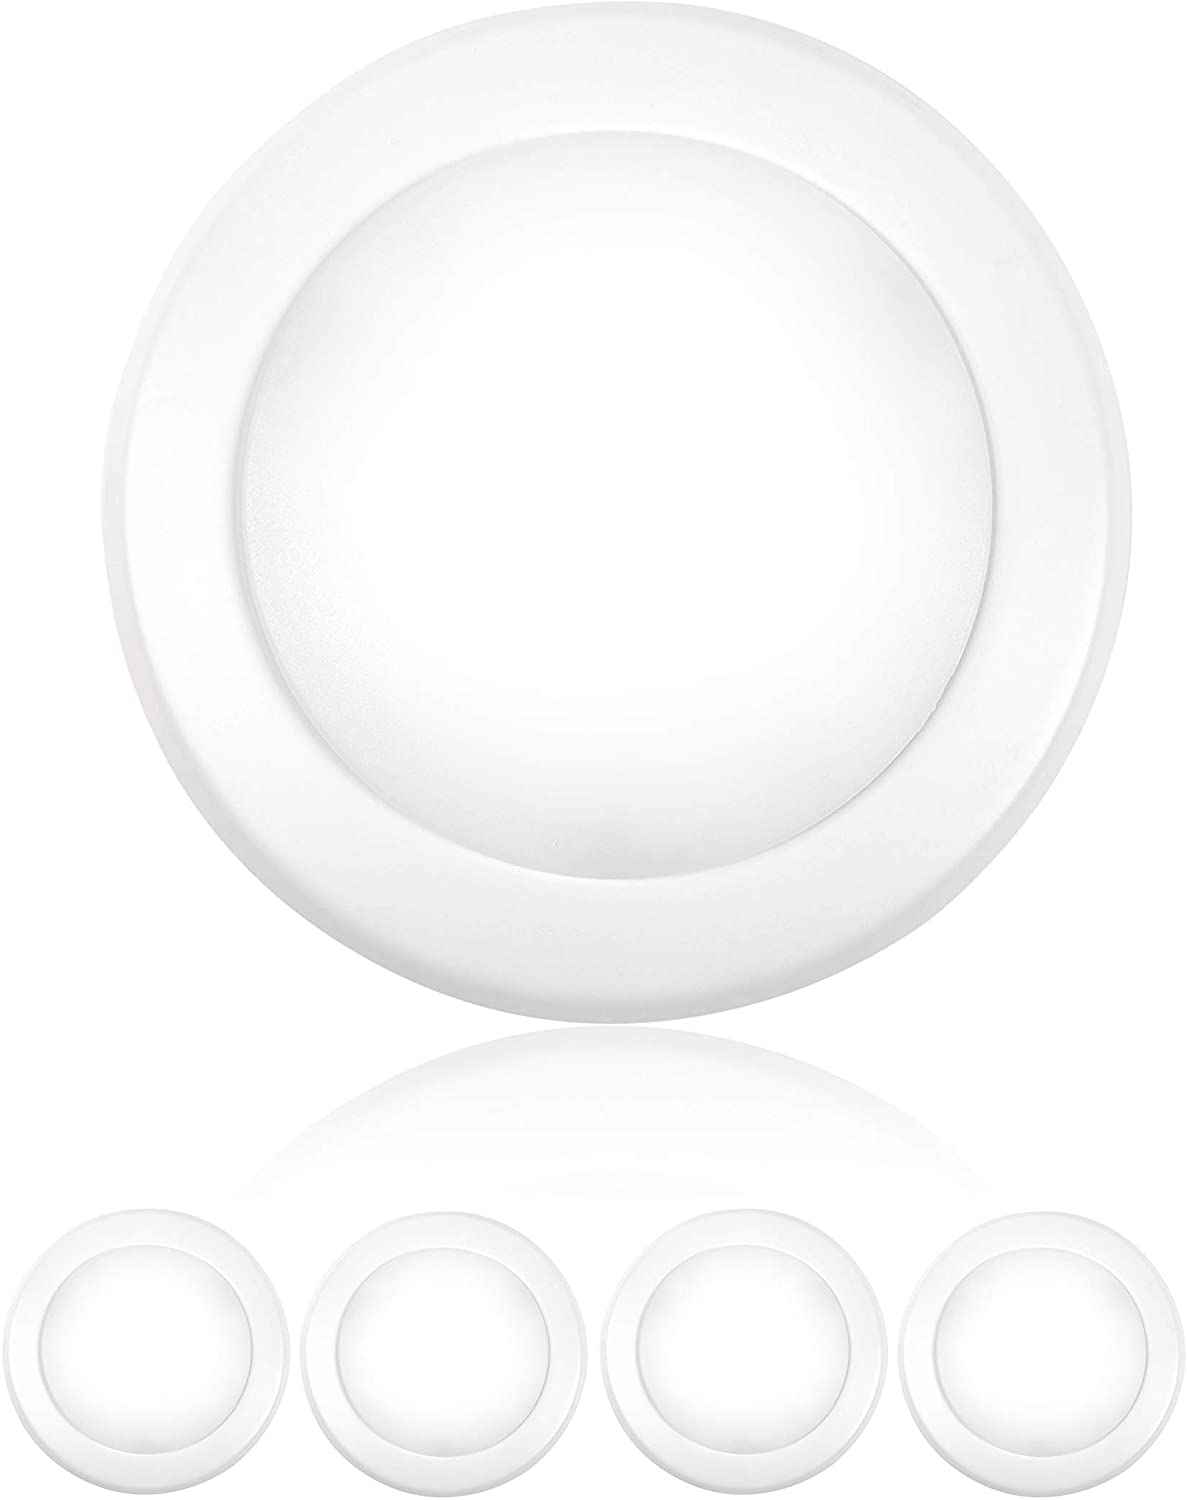 """PARMIDA (4 Pack) 5/6"""" Dimmable LED Disk Light Flush Mount Recessed Retrofit Ceiling Lights, 15W (120W Replacement), 3000K, Energy Star & ETL-Listed, Installs into Junction Box Or Recessed Can, 1050lm"""